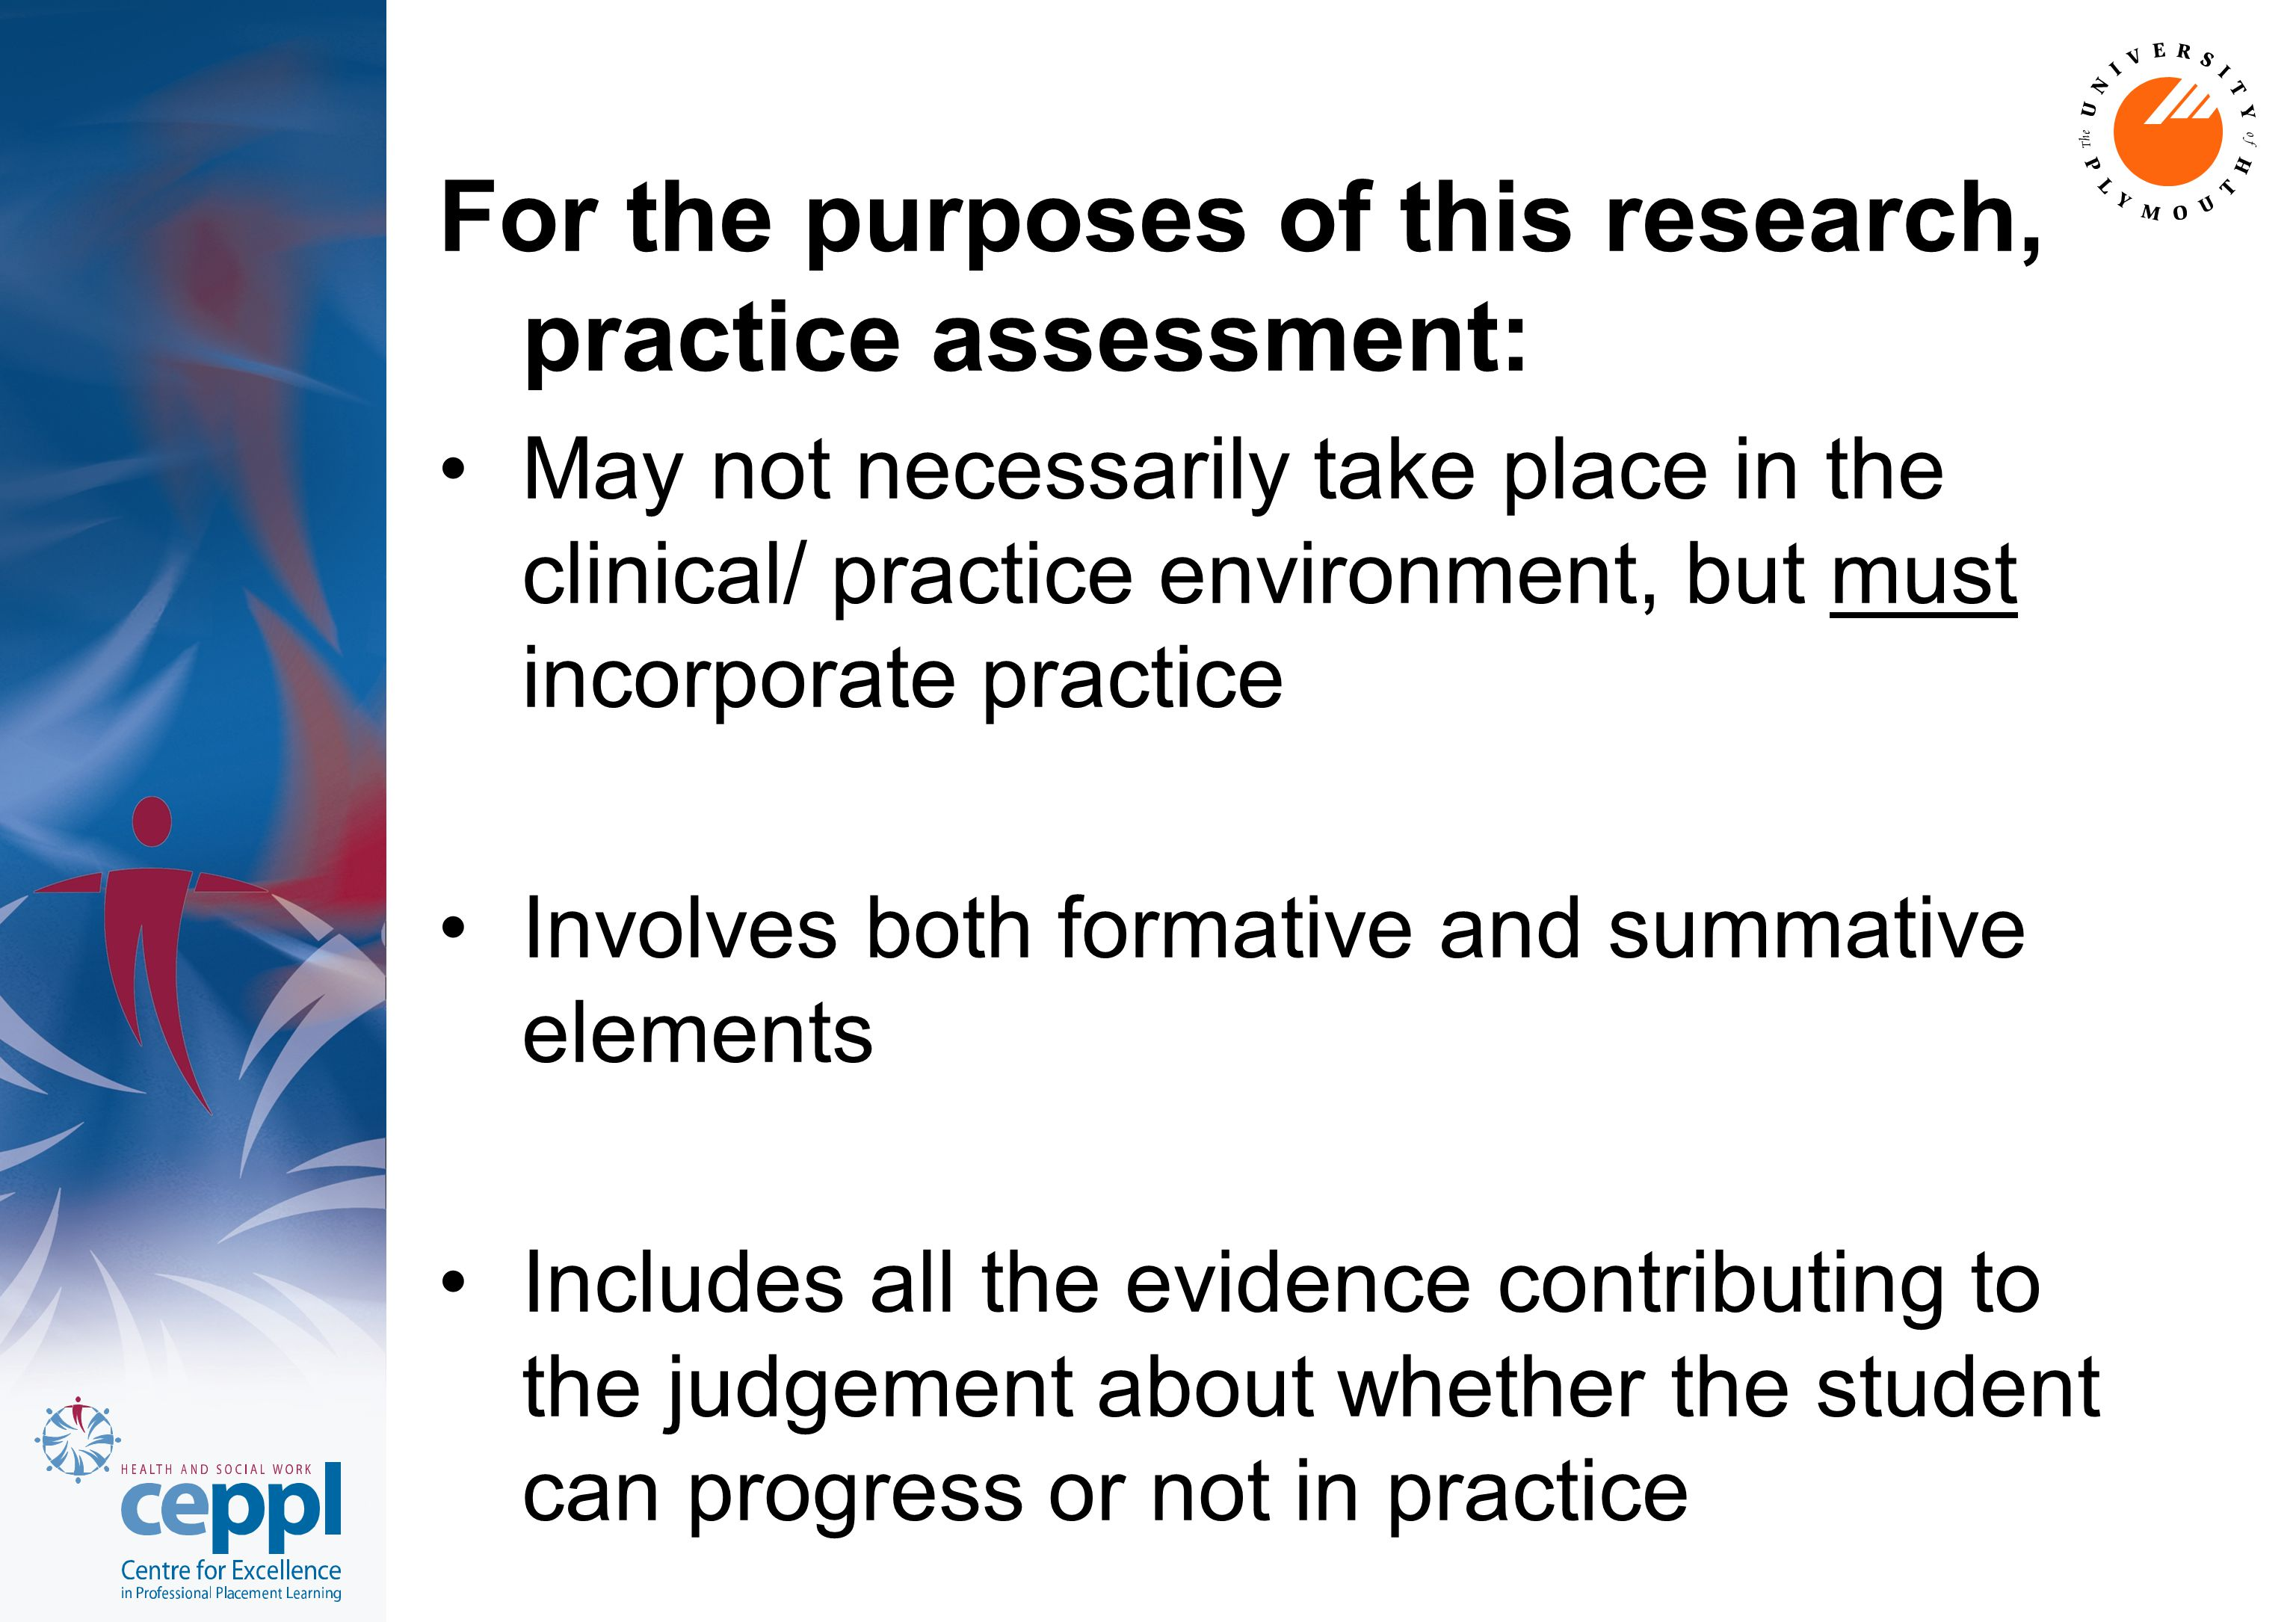 For the purposes of this research, practice assessment: May not necessarily take place in the clinical/ practice environment, but must incorporate pra